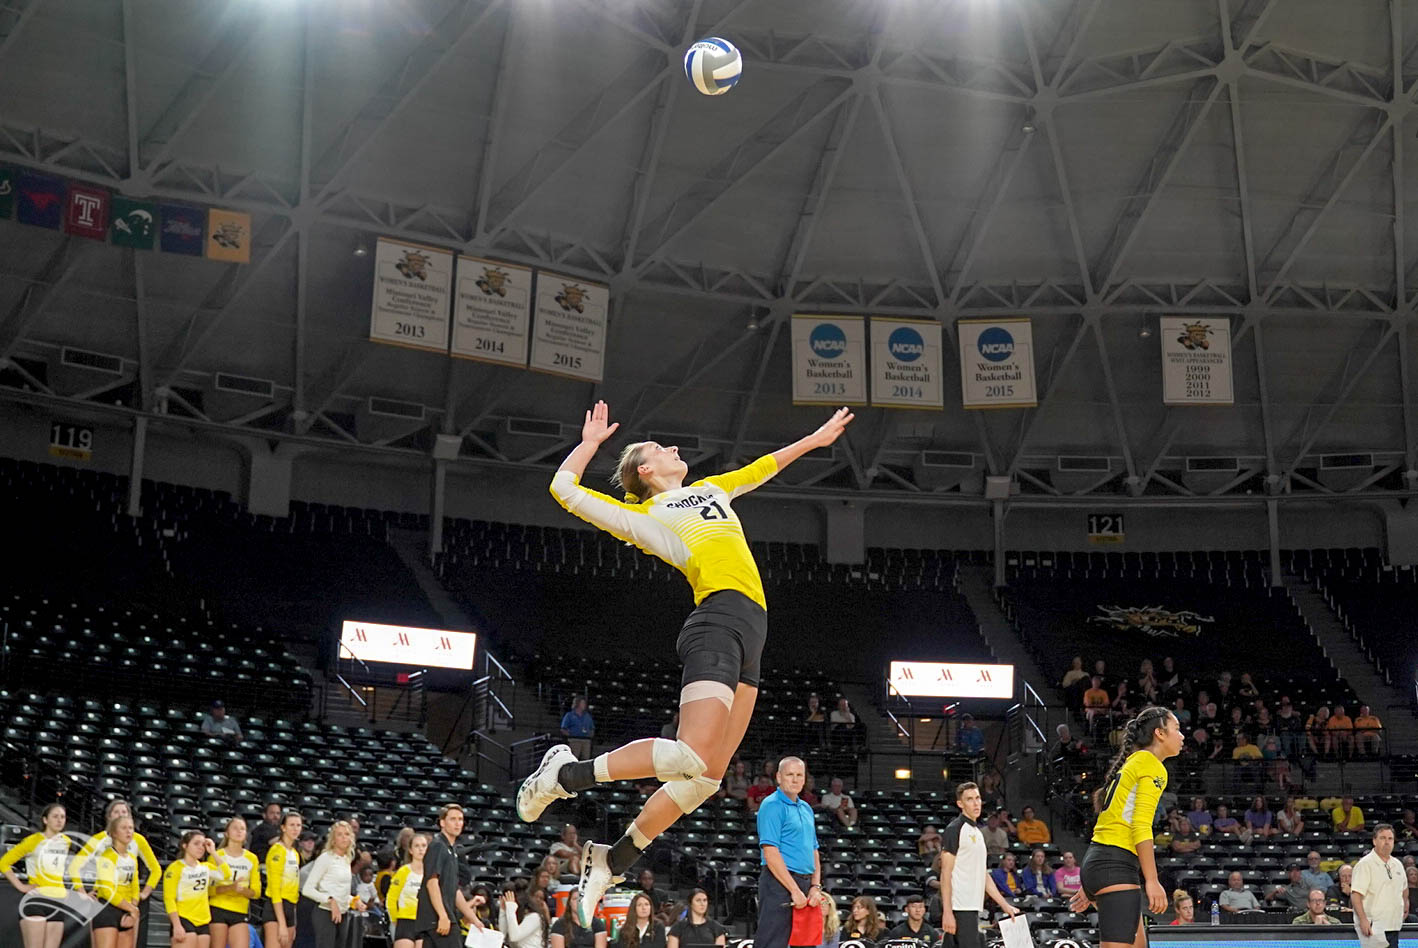 Wichita State sophomore Megan Taflinger goes up for a serve during the Shockers' match against Cincinnati on Sunday inside Charles Koch Arena.